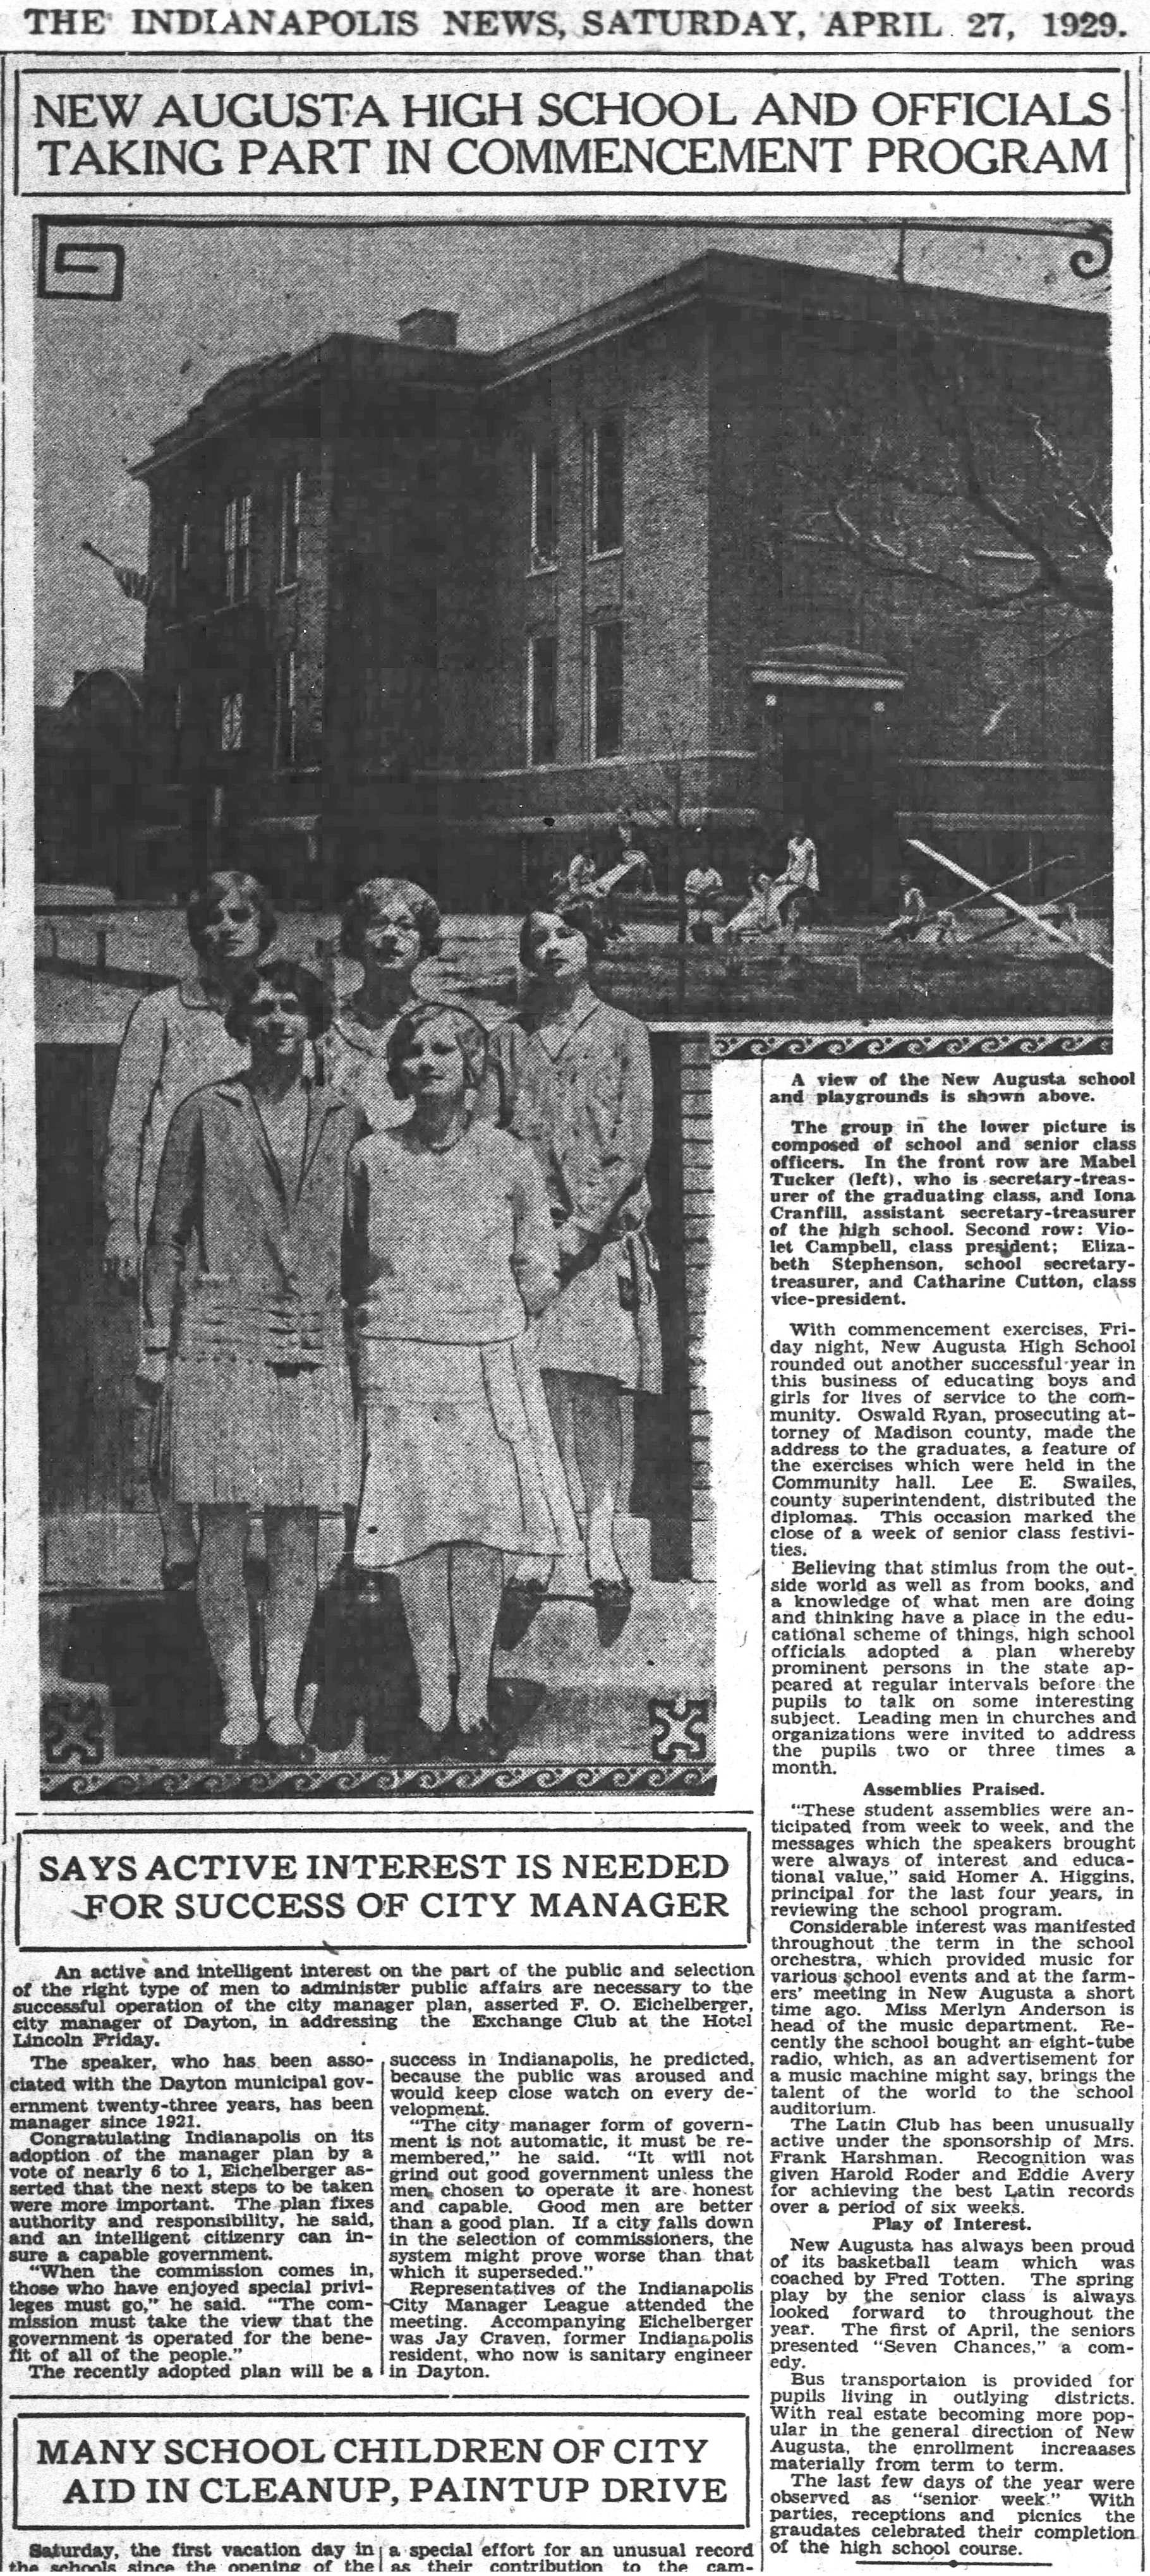 (scan courtesy of newspapers.com) CLICK ON ARTICLE TO ENLARGE